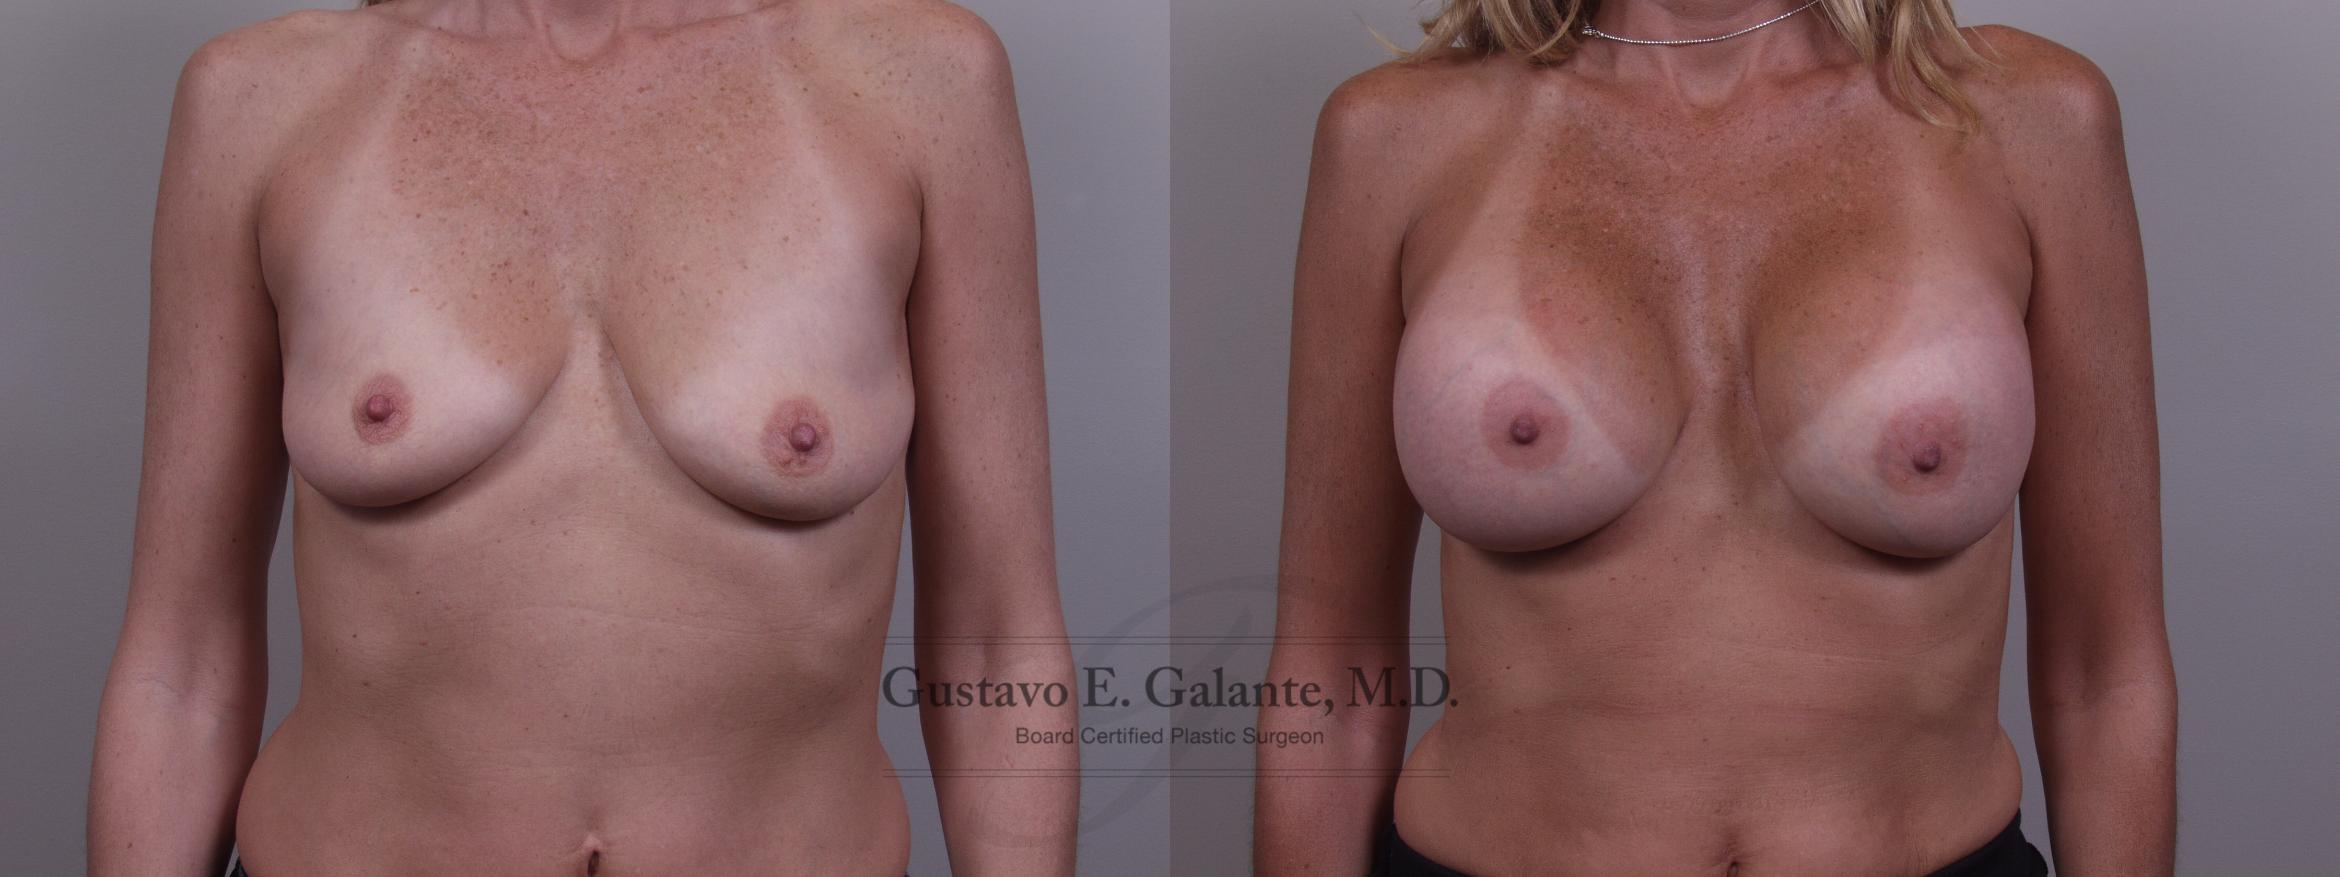 Breast Augmentation Case 83 Before & After View #1 | Valparaiso & Schererville, IN | Gustavo E. Galante, MD